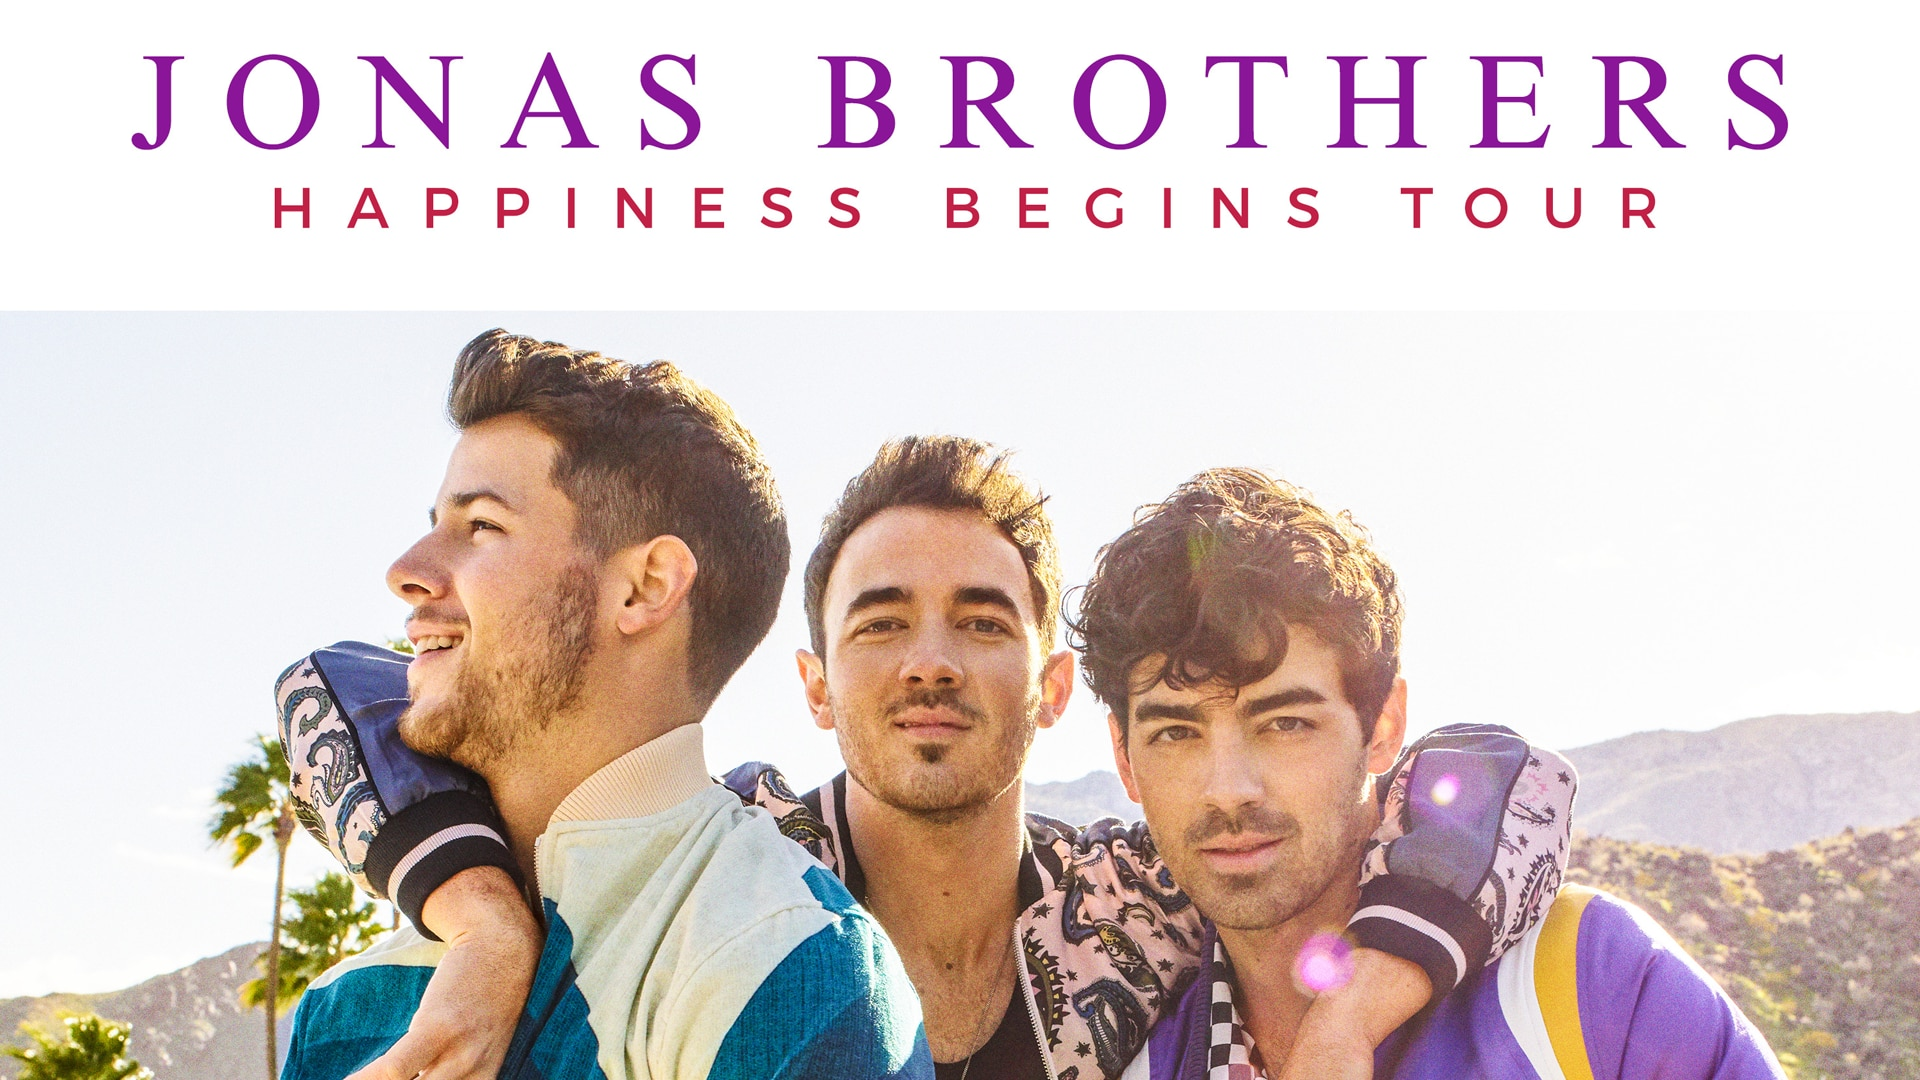 Jonas Brothers - Happiness Begins Tour with Special Guests Bebe Rexha and Jordan McGraw